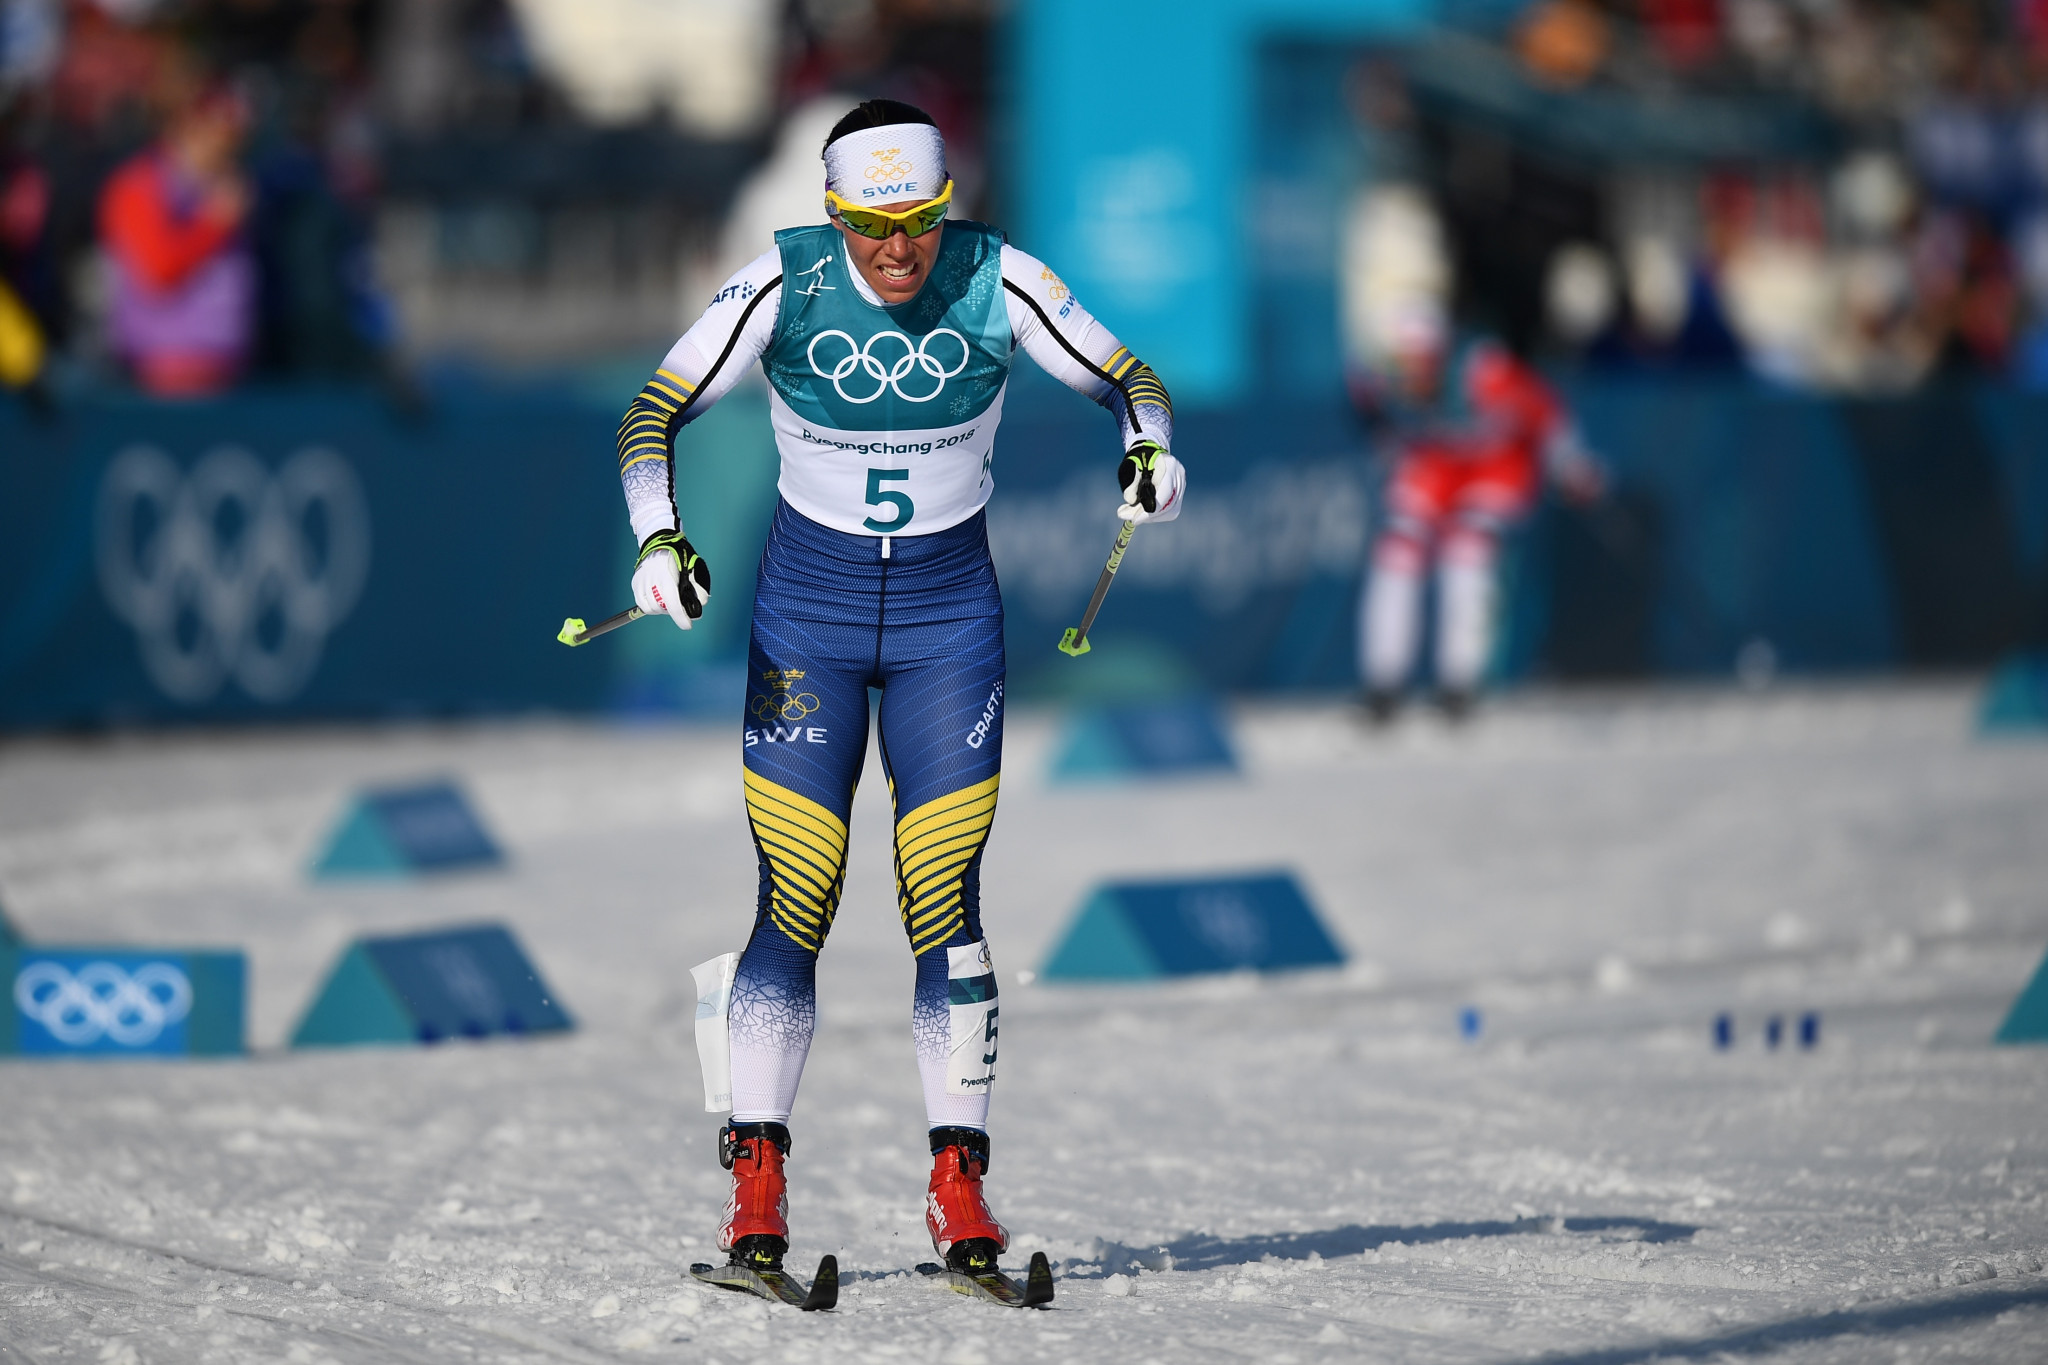 Three-time Olympic gold medal-winning cross-country skier Charlotte Kalla is among the ambassadors named ©Getty Images